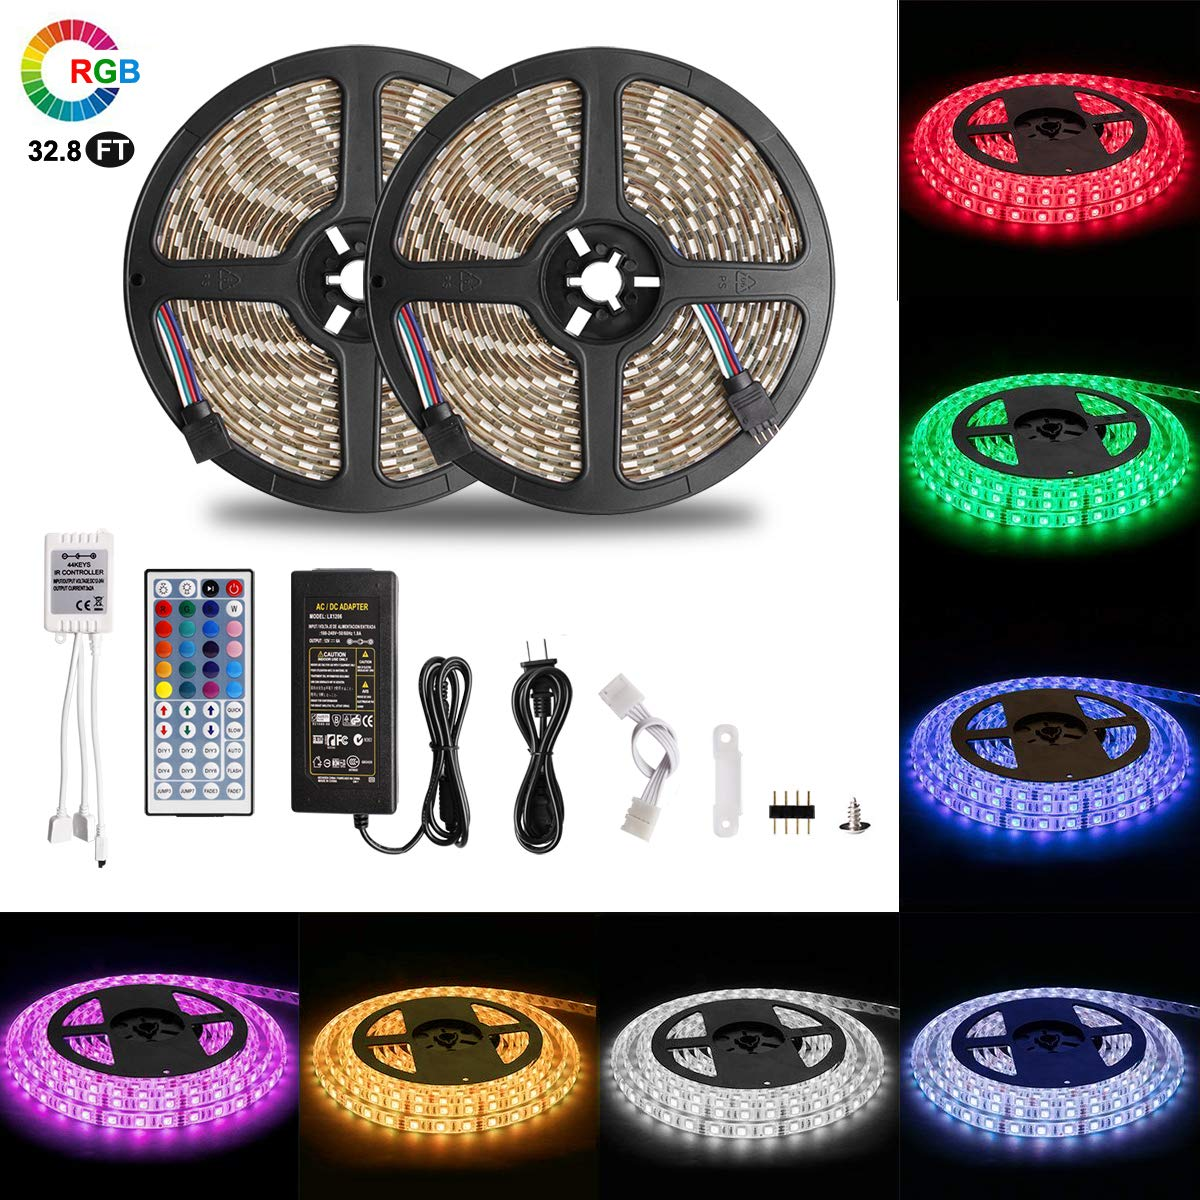 LED Strip Lights,Dimmable Multicolored LED Lights Kit 32.8ft/10m, 600LEDs,5050RGB,12V IP65 Waterproof with 44Key Remote Controller for Home,Kitchen Decoration (Waterproof 32.8ft/10m Light Strip)